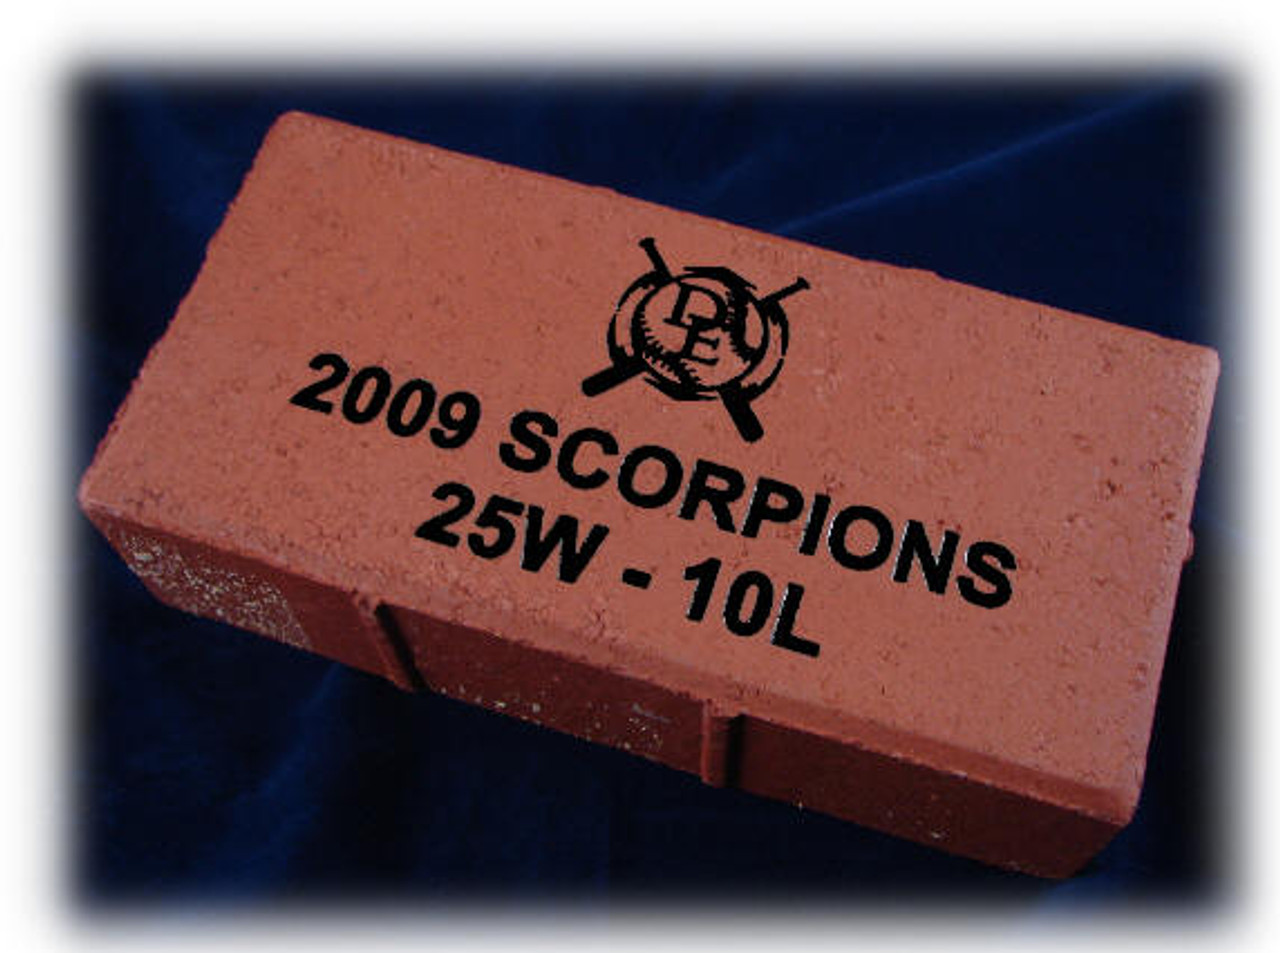 4 x 8 x br 2-1/4 , LaserGrade Red Street Paver Brick, Smooth Surface with 1/4 Beveled Top Surface and Lugs on Sides.